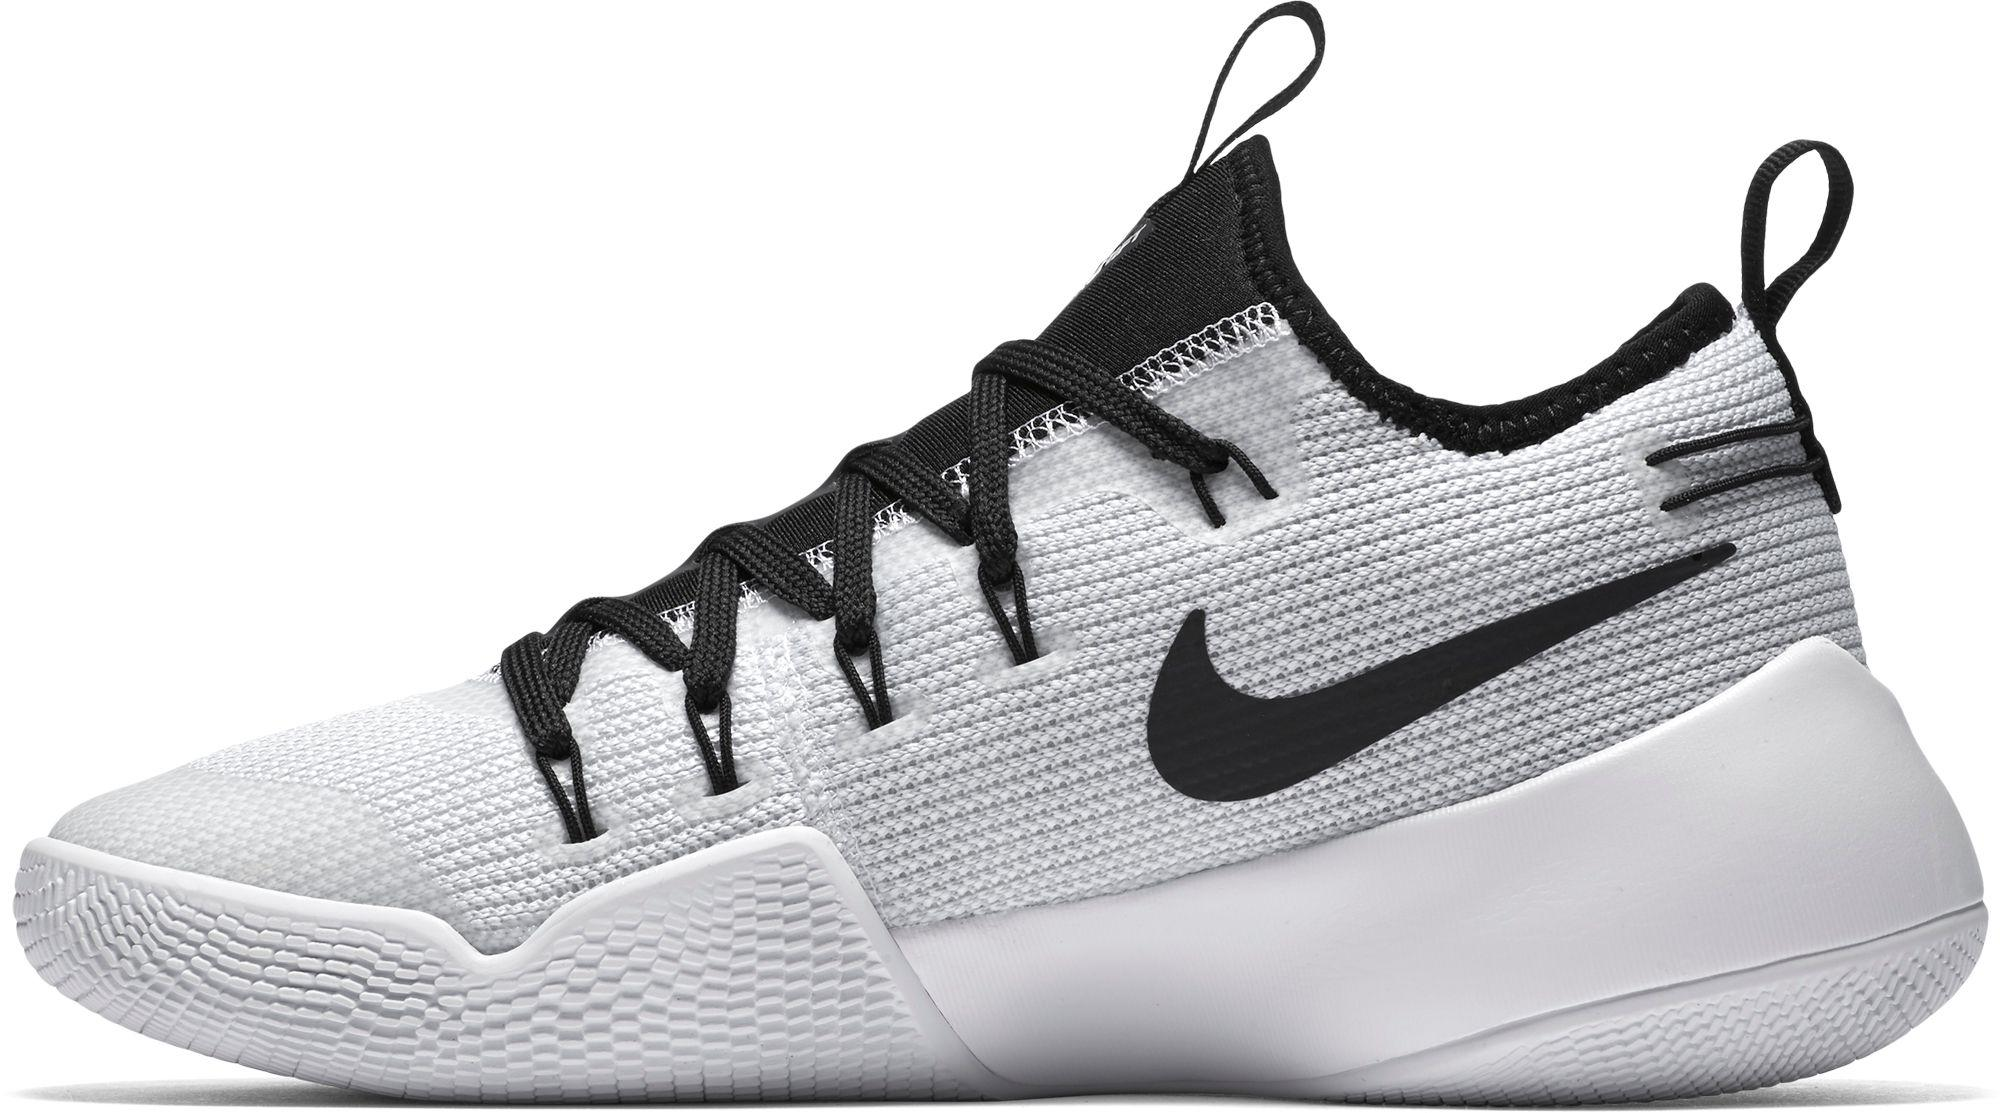 official photos 7bc3c c7fd6 ... promo code for lyst nike hypershift tb basketball shoes in black for  men ac749 0d1b1